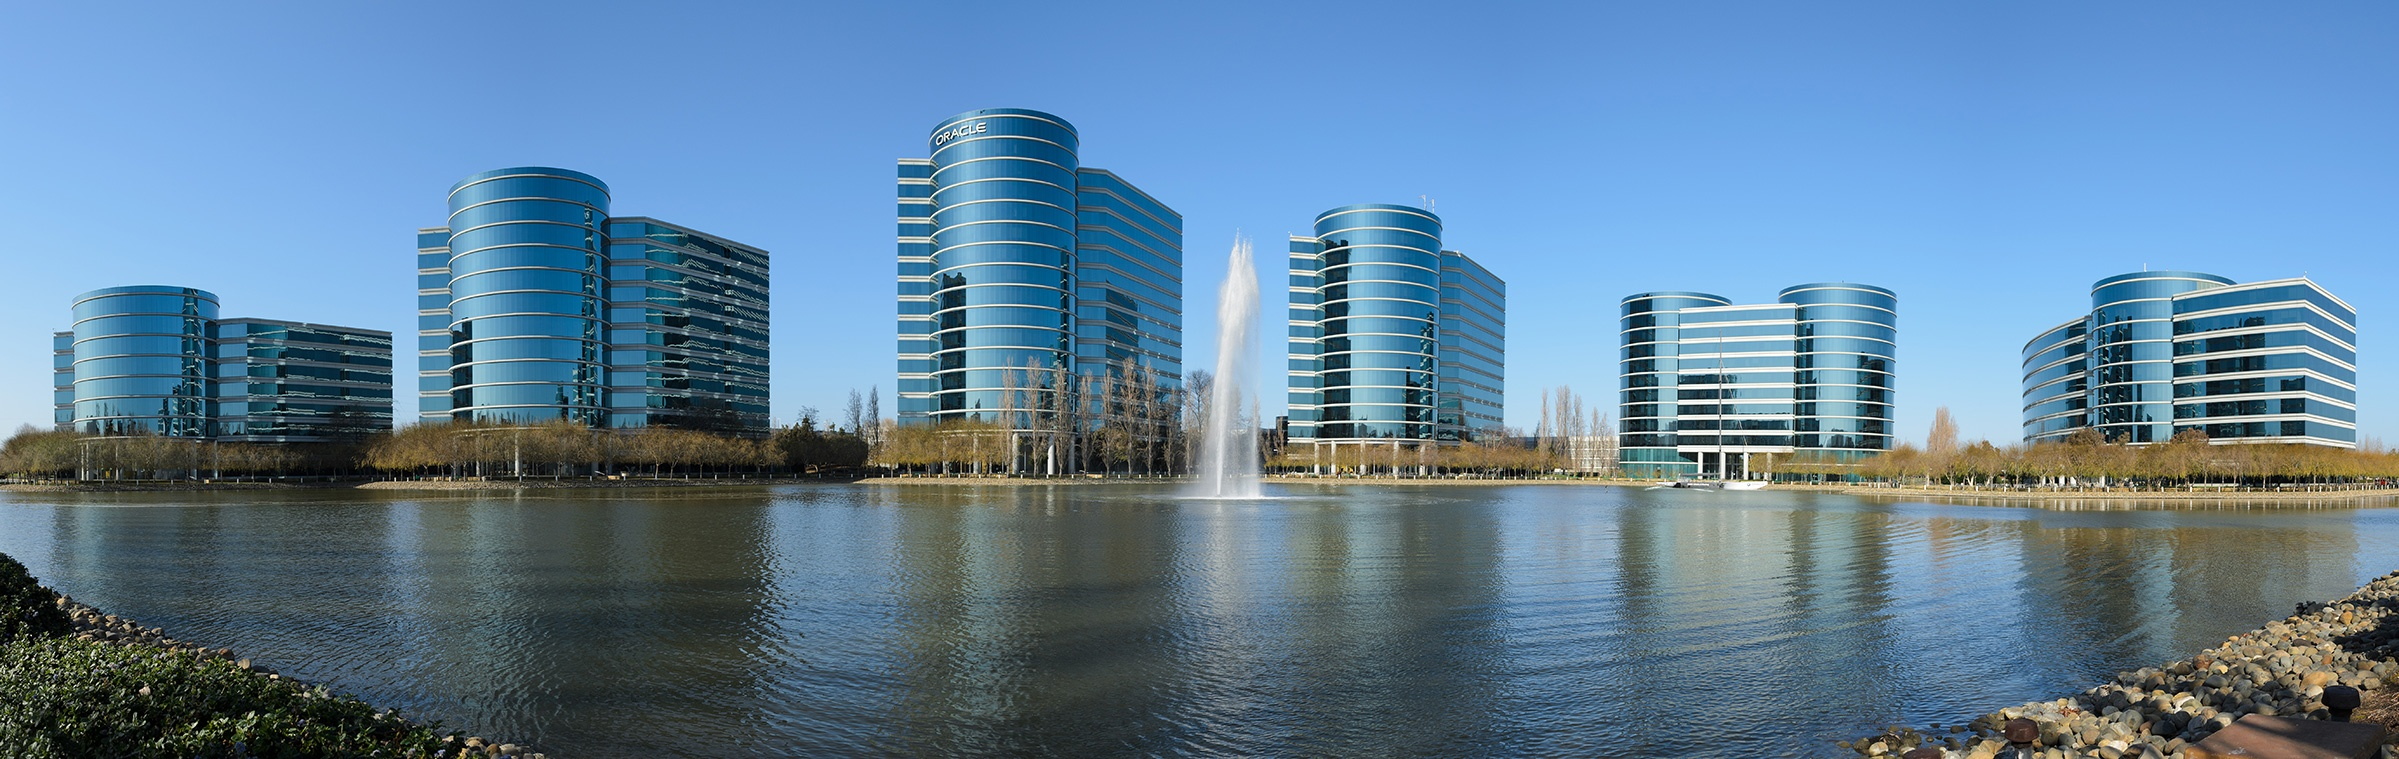 Oracle-offices-redwood.jpg